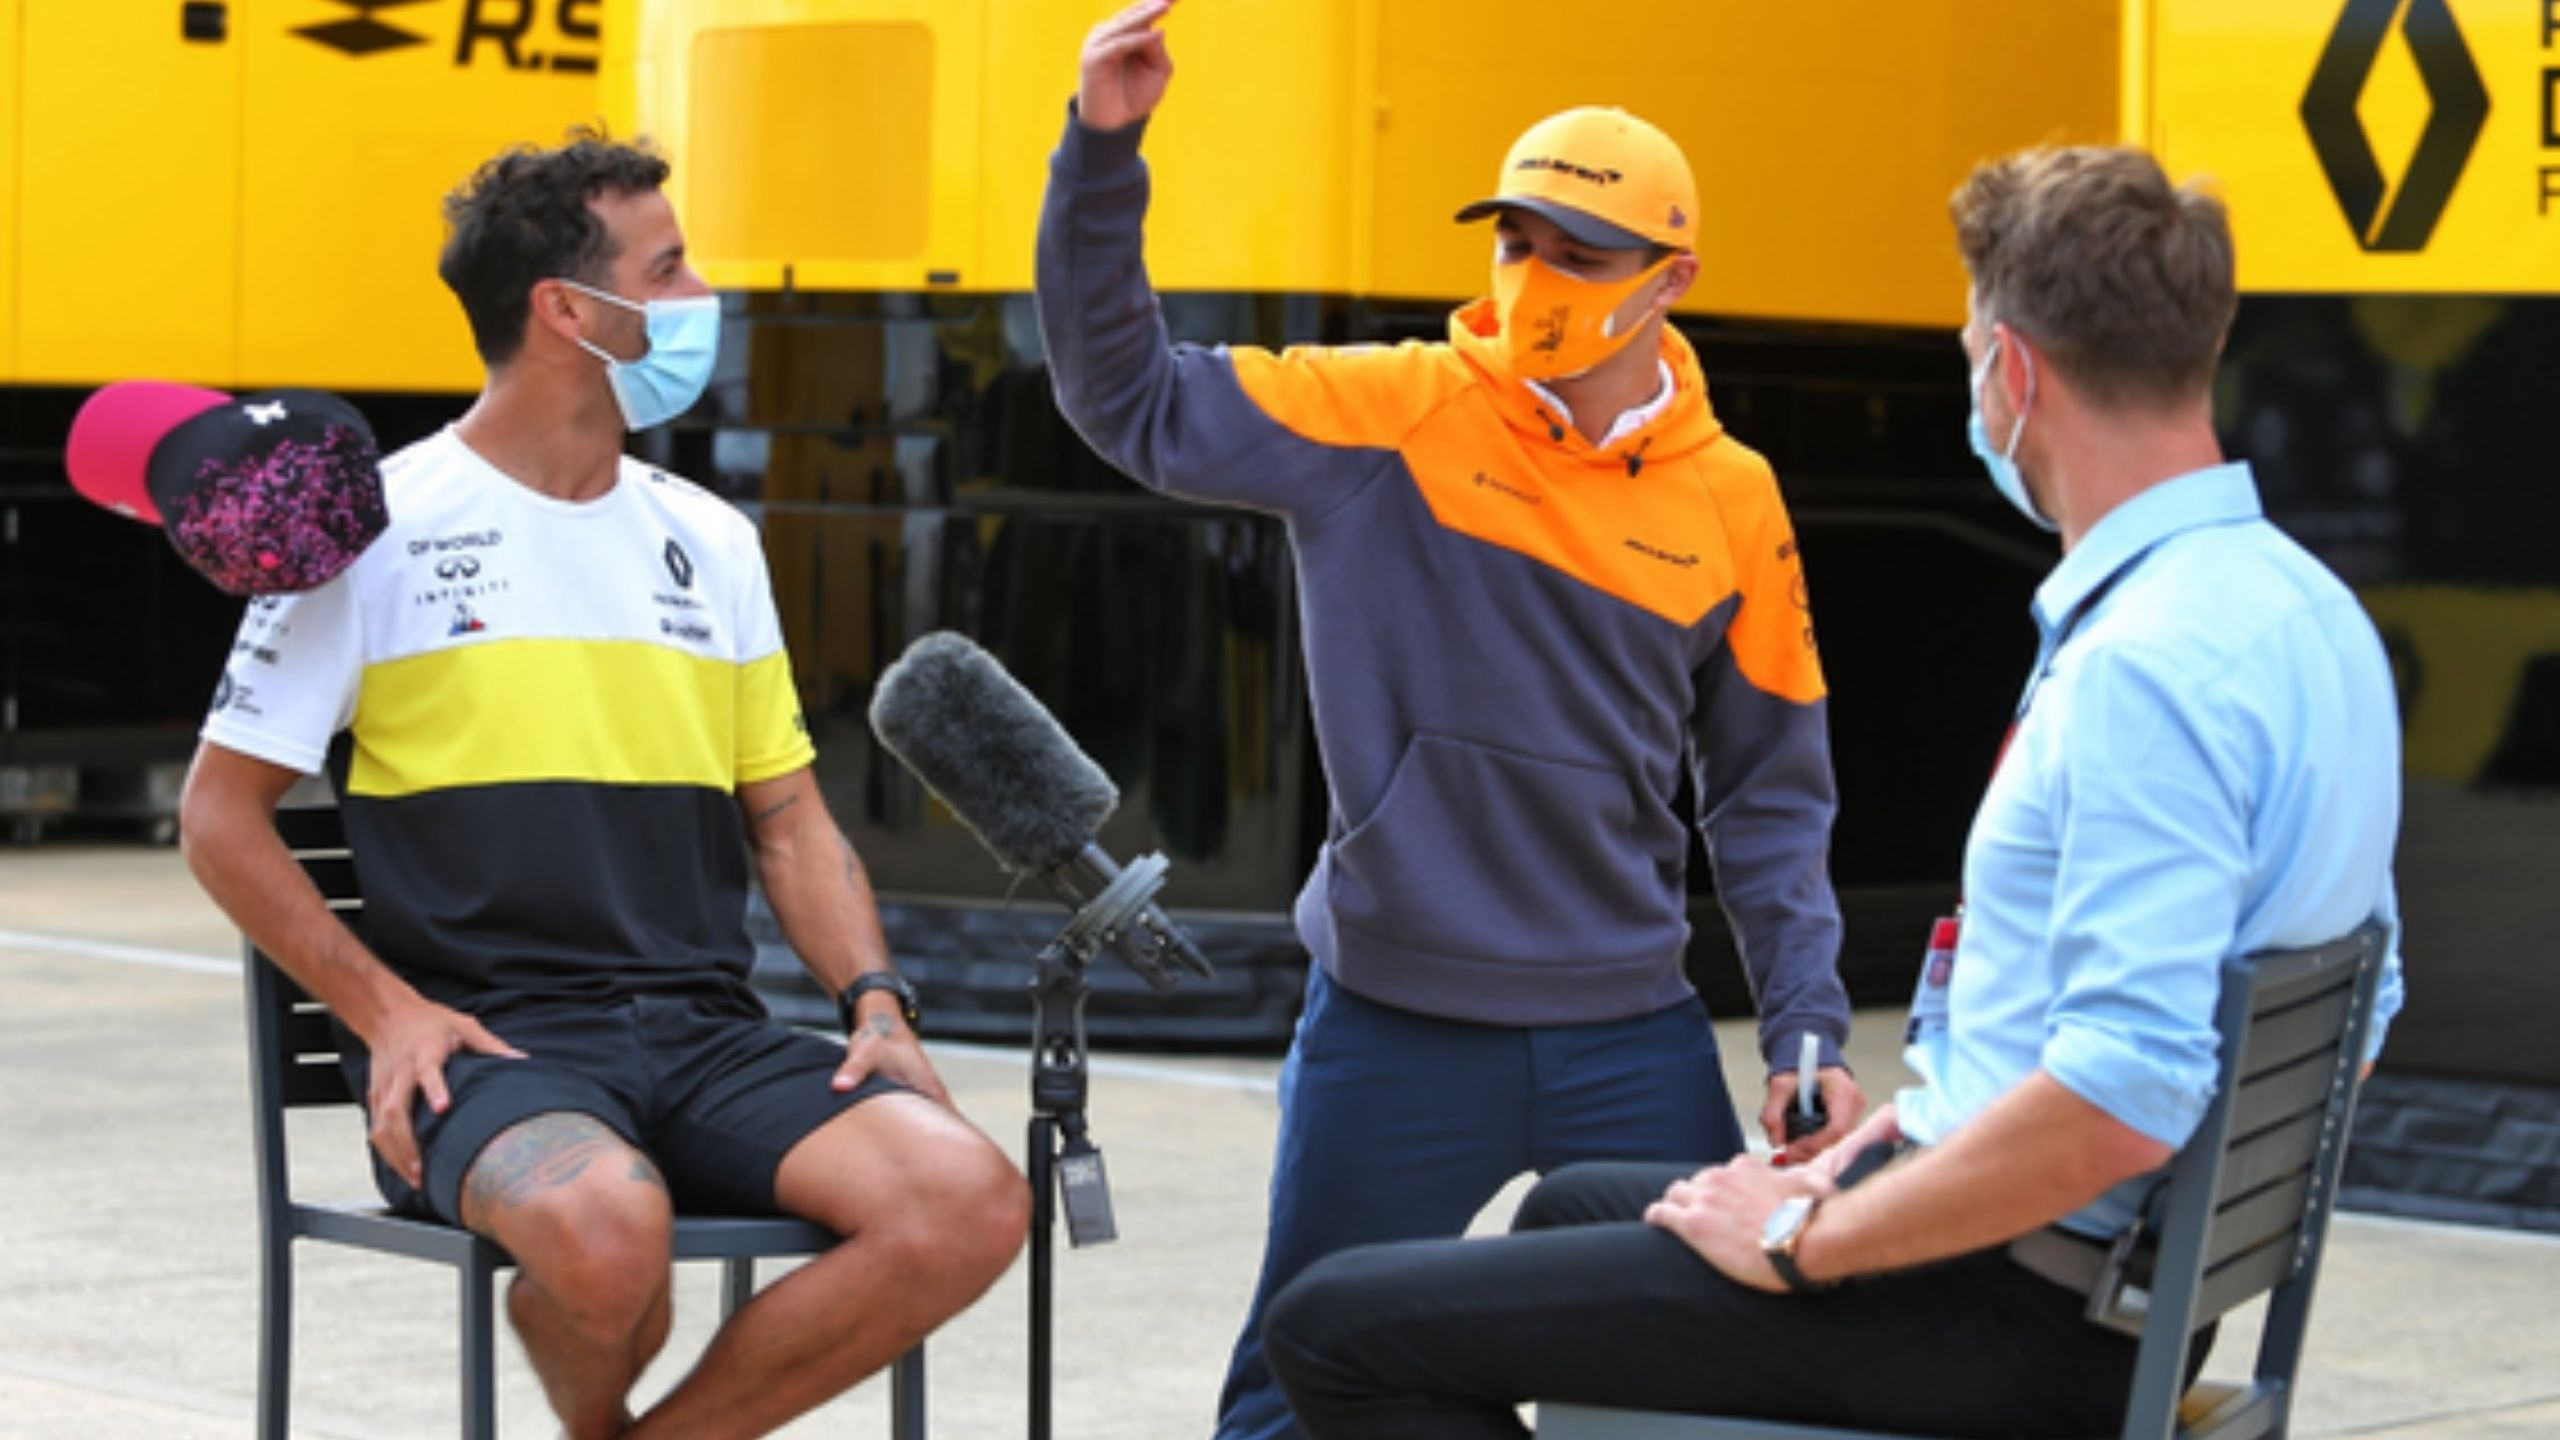 Daniel Ricciardo will be missed at Renault after he moves to McLaren, admits executive director Marcin Budkowski